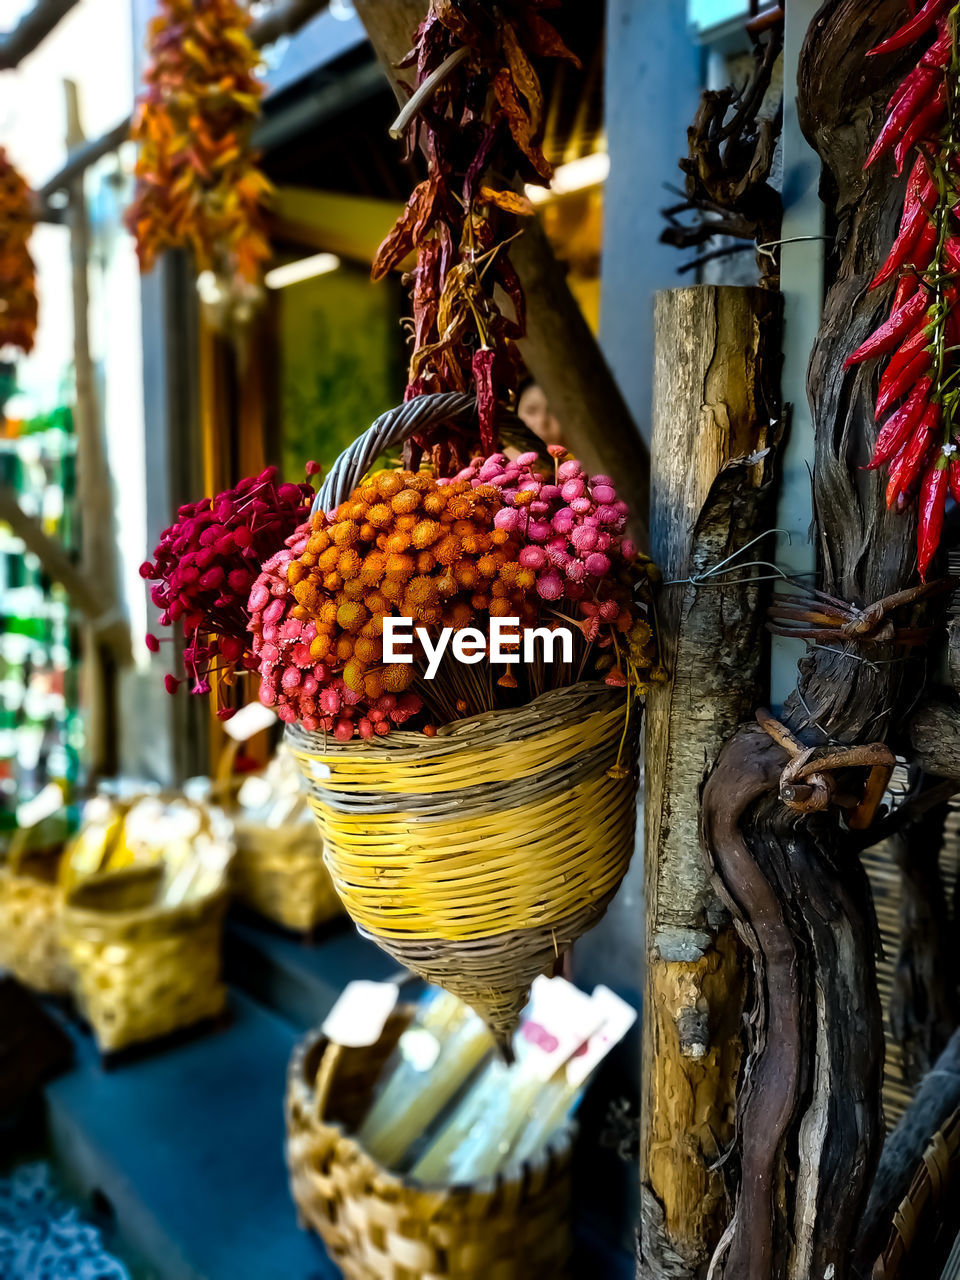 plant, freshness, hanging, no people, focus on foreground, close-up, food, food and drink, nature, day, flower, container, flowering plant, market, for sale, basket, wellbeing, still life, market stall, healthy eating, outdoors, retail display